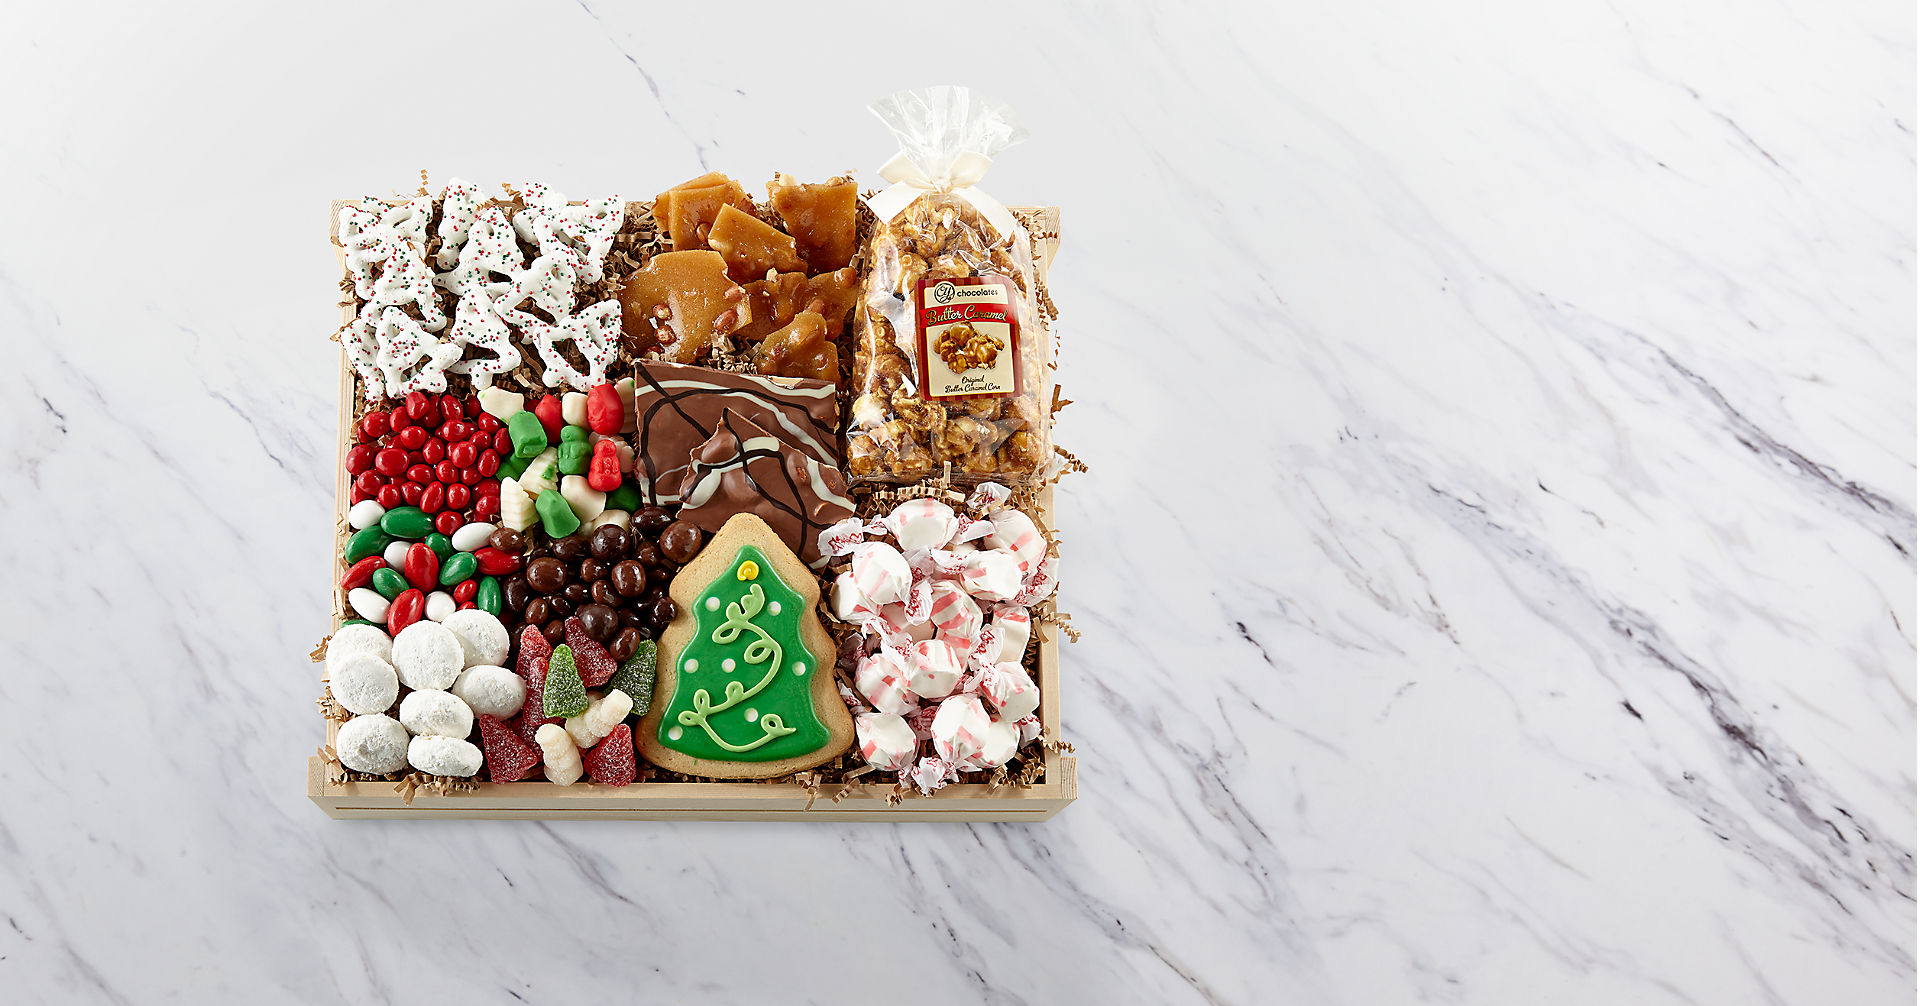 Holiday Delights Chocolate & Sweets Gourmet Gift Basket - BEST - Image 2 Of 2